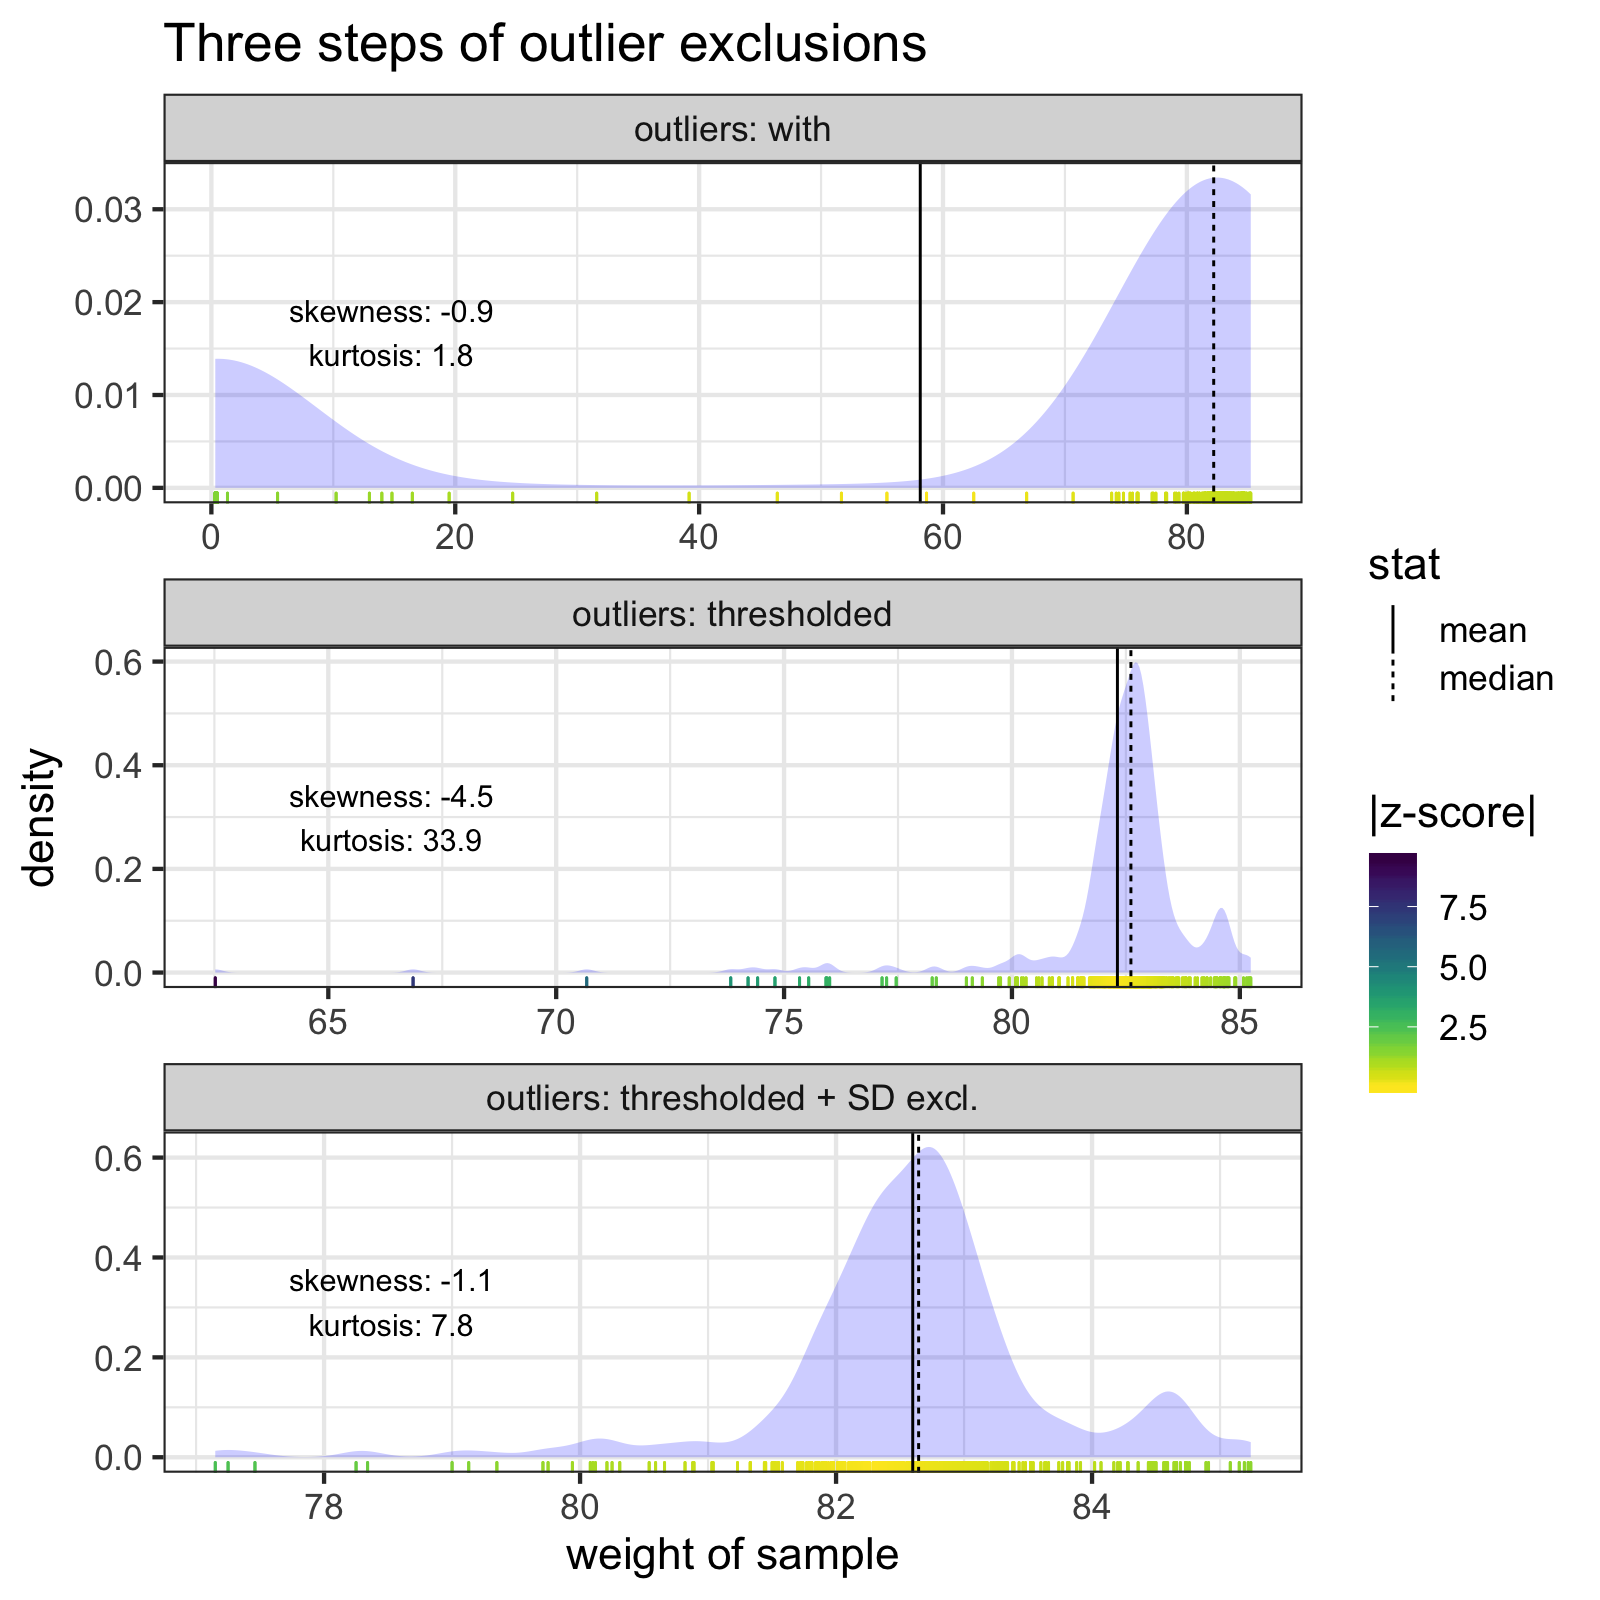 The two outlier steps (thresholding and z-score exclusions) together do a much better job of cleaning the most troublesome measurement, and bring the mean an median much closer together.